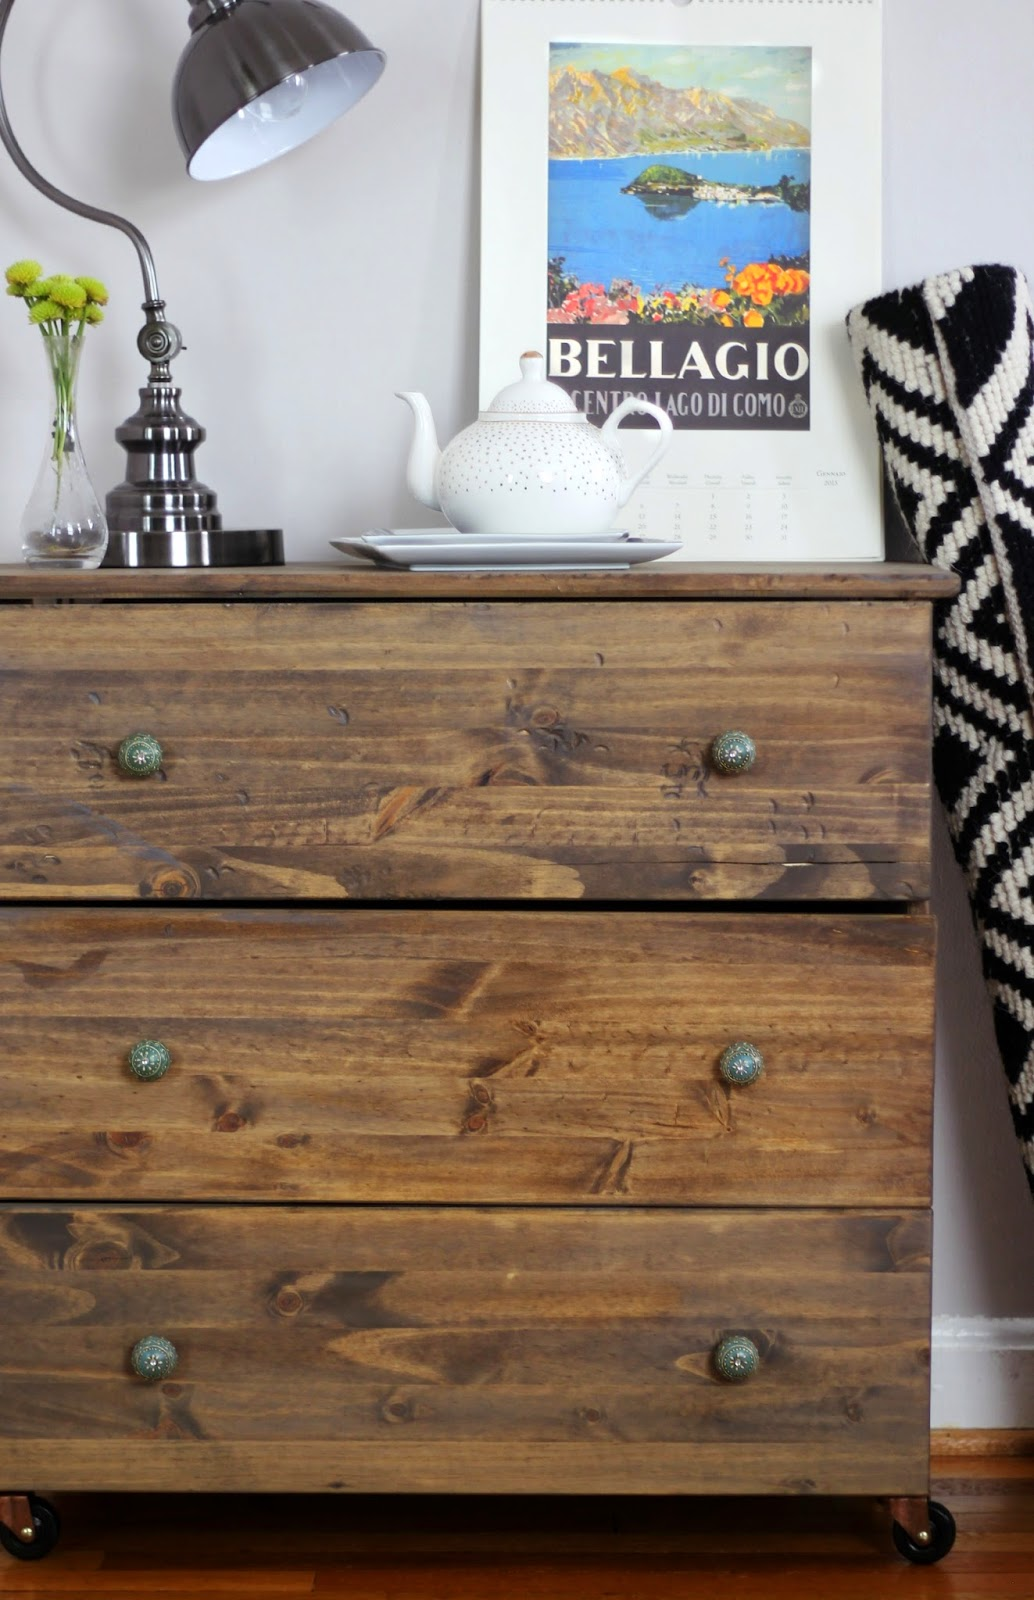 This tarva dresser got some new wood stain and now looks amazing as a bedroom dresser